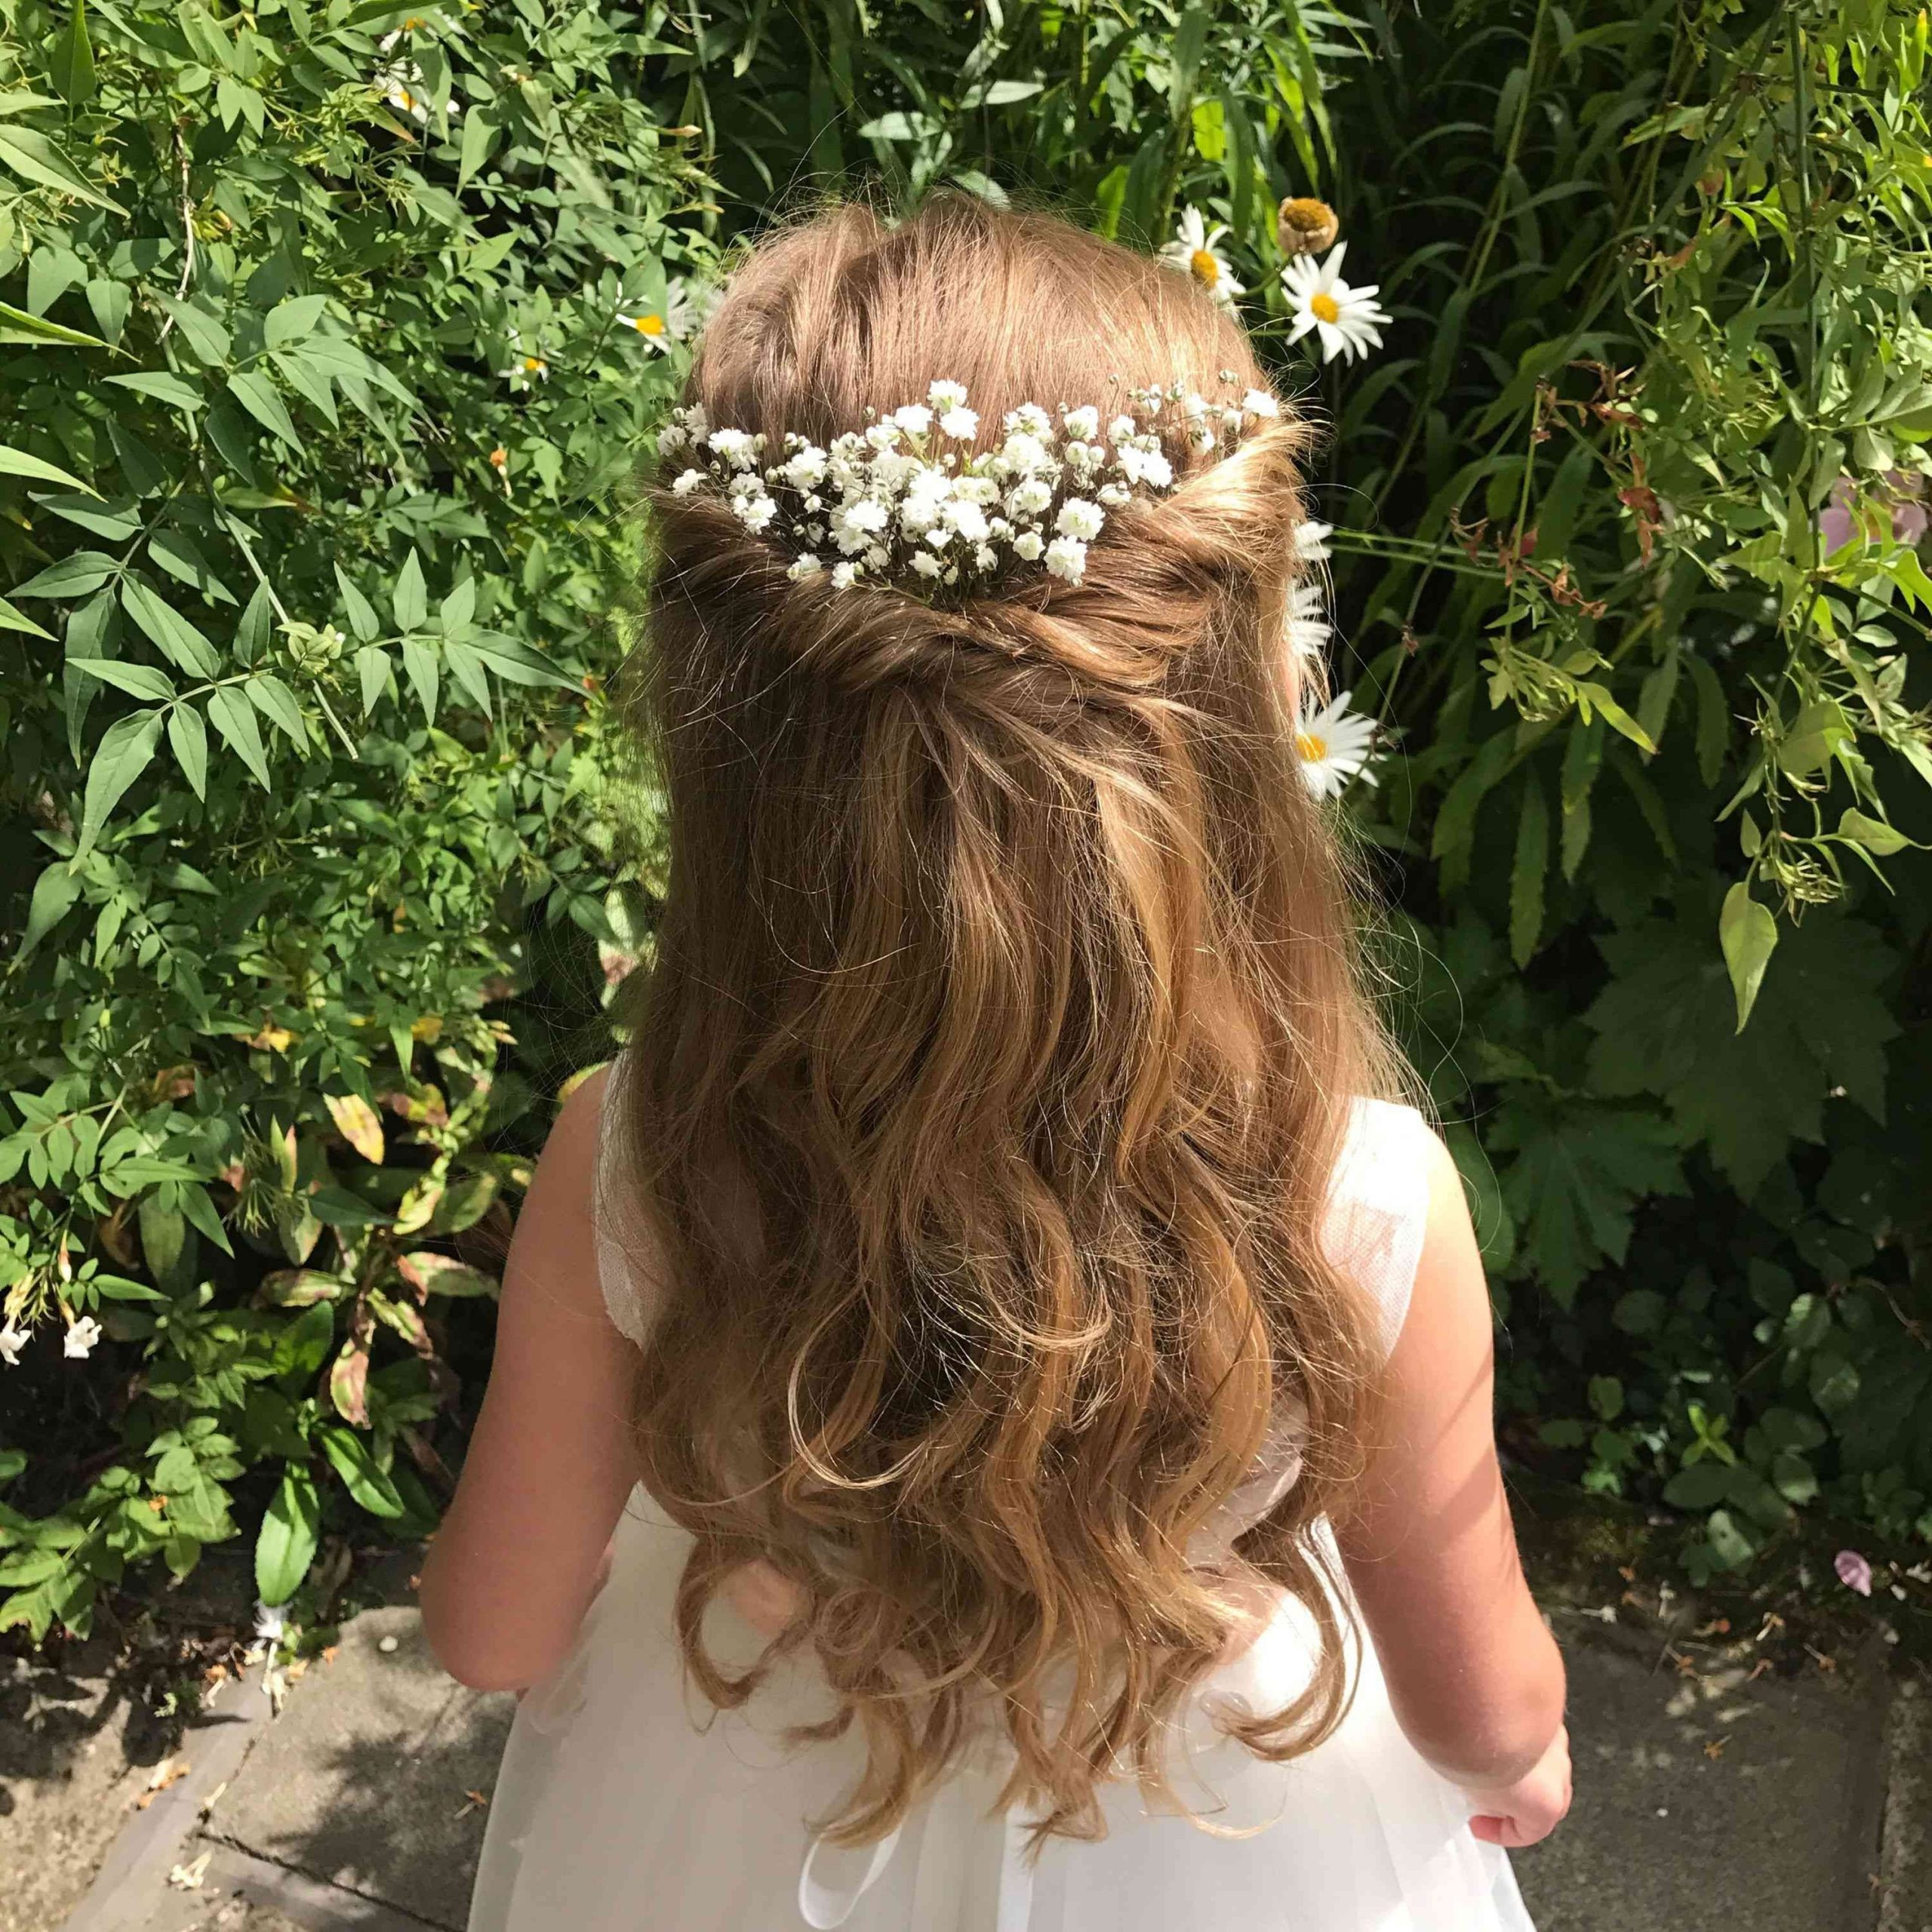 20 Adorable Flower Girl Hairstyles 10+ Adorable Flower Girl Hairstyles For Medium Hair